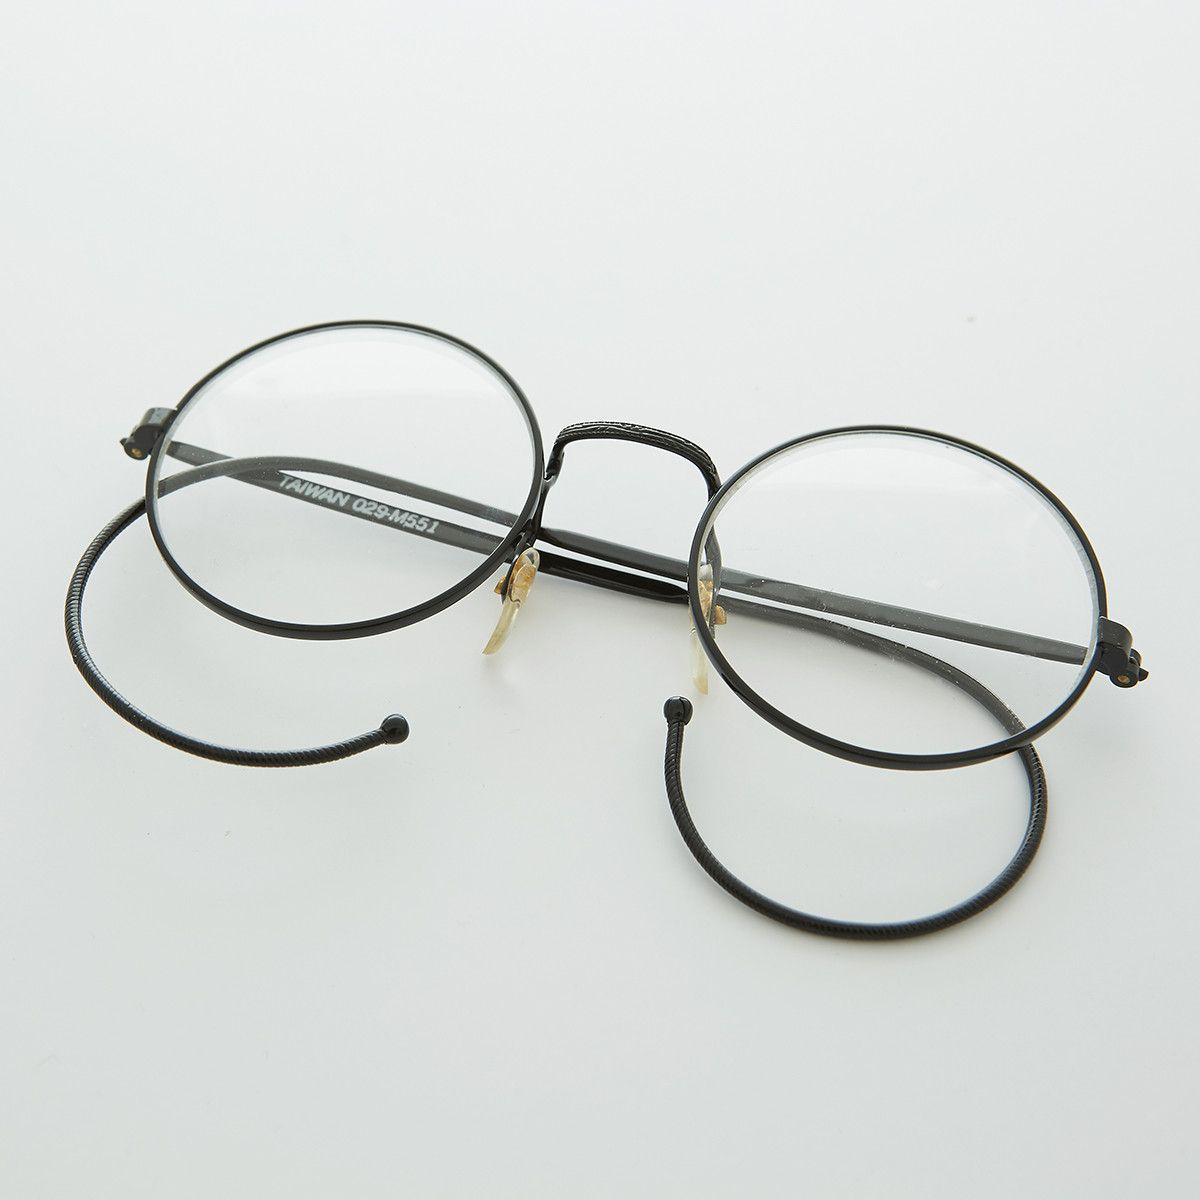 Glasses Frames Cable Temple : Round John Lennon Victorian Spectacle Vintage Eyeglasses ...